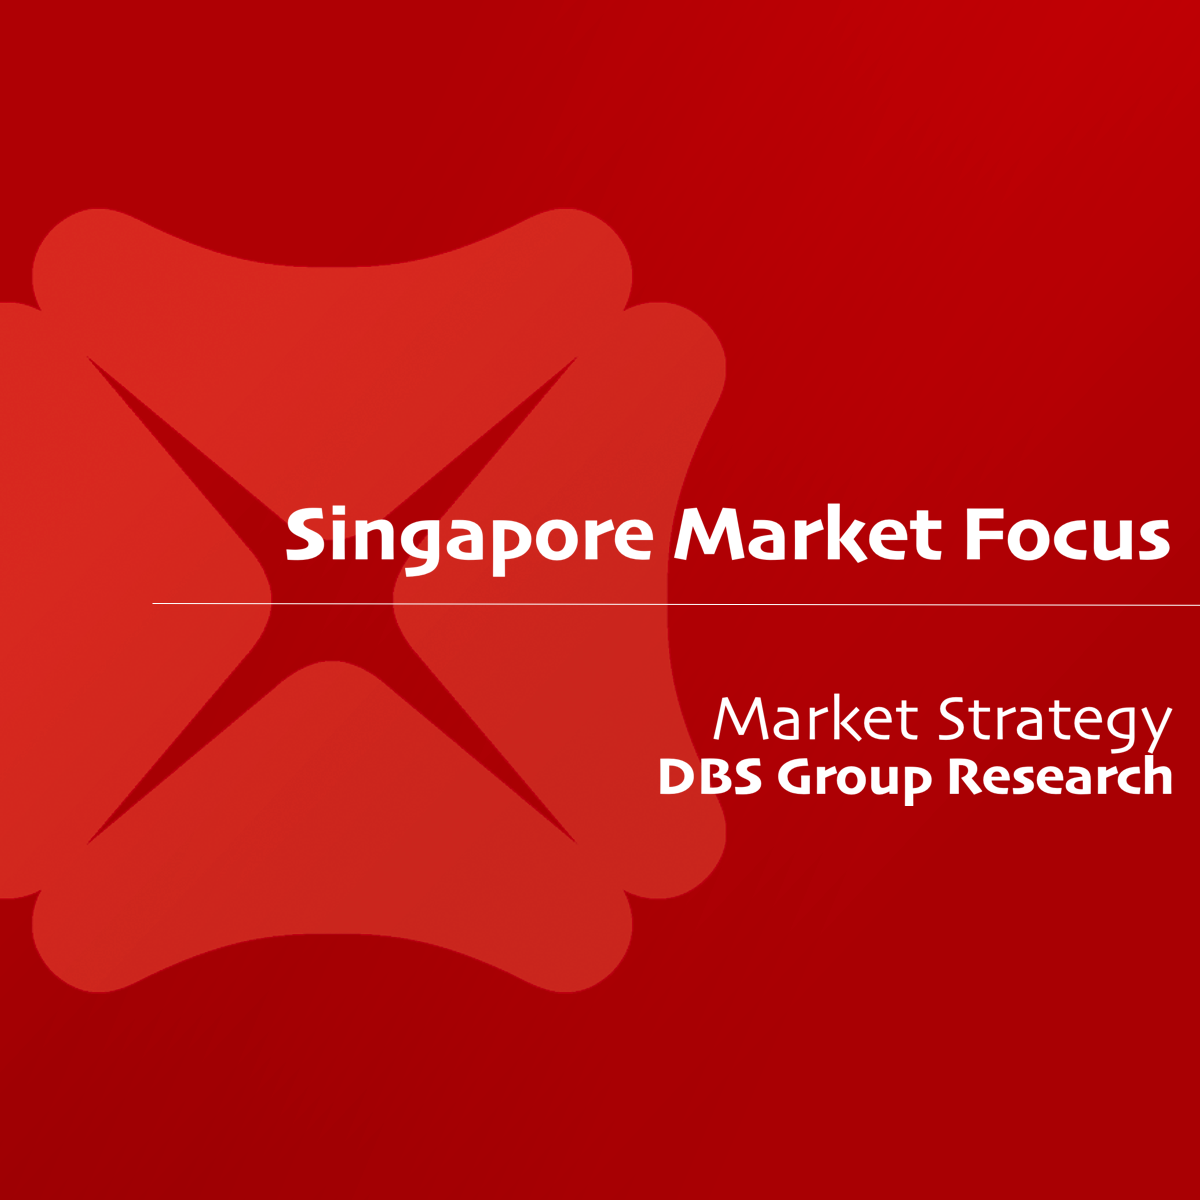 Singapore Market Focus - DBS Research | SGinvestors.io